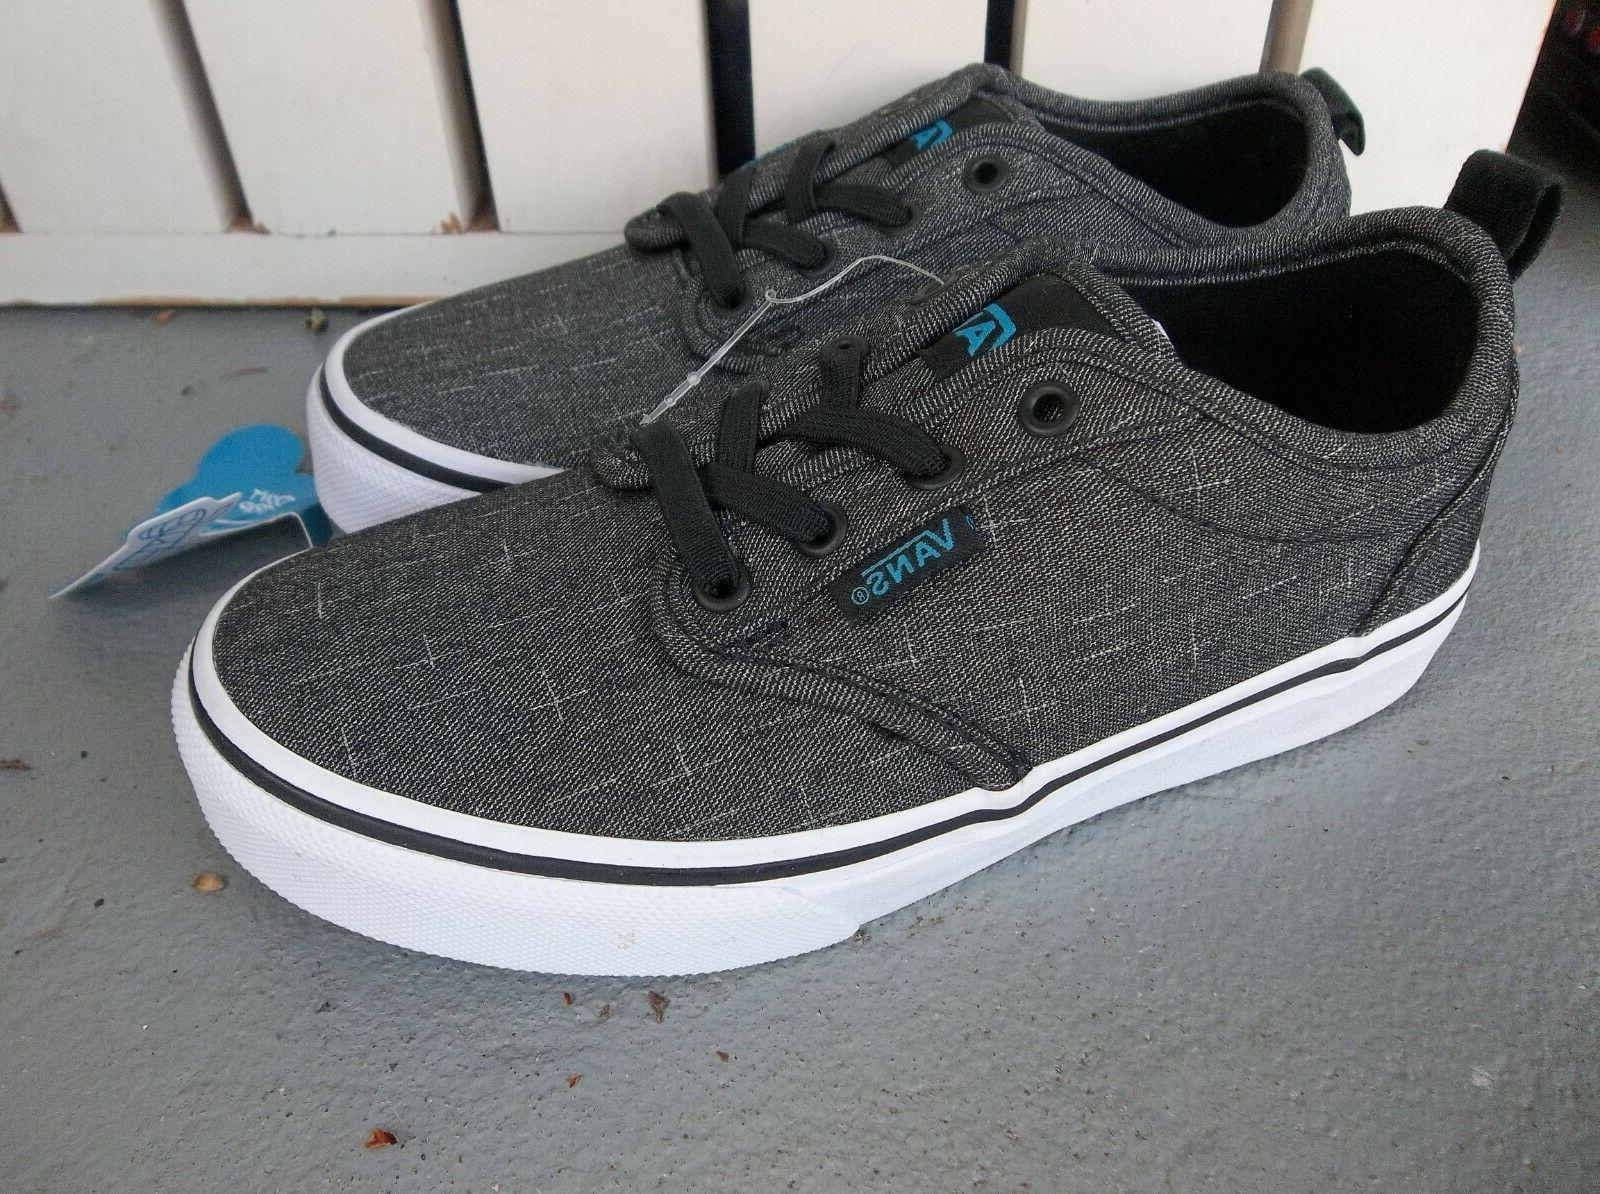 nwt boys youth atwood slip on sneakers